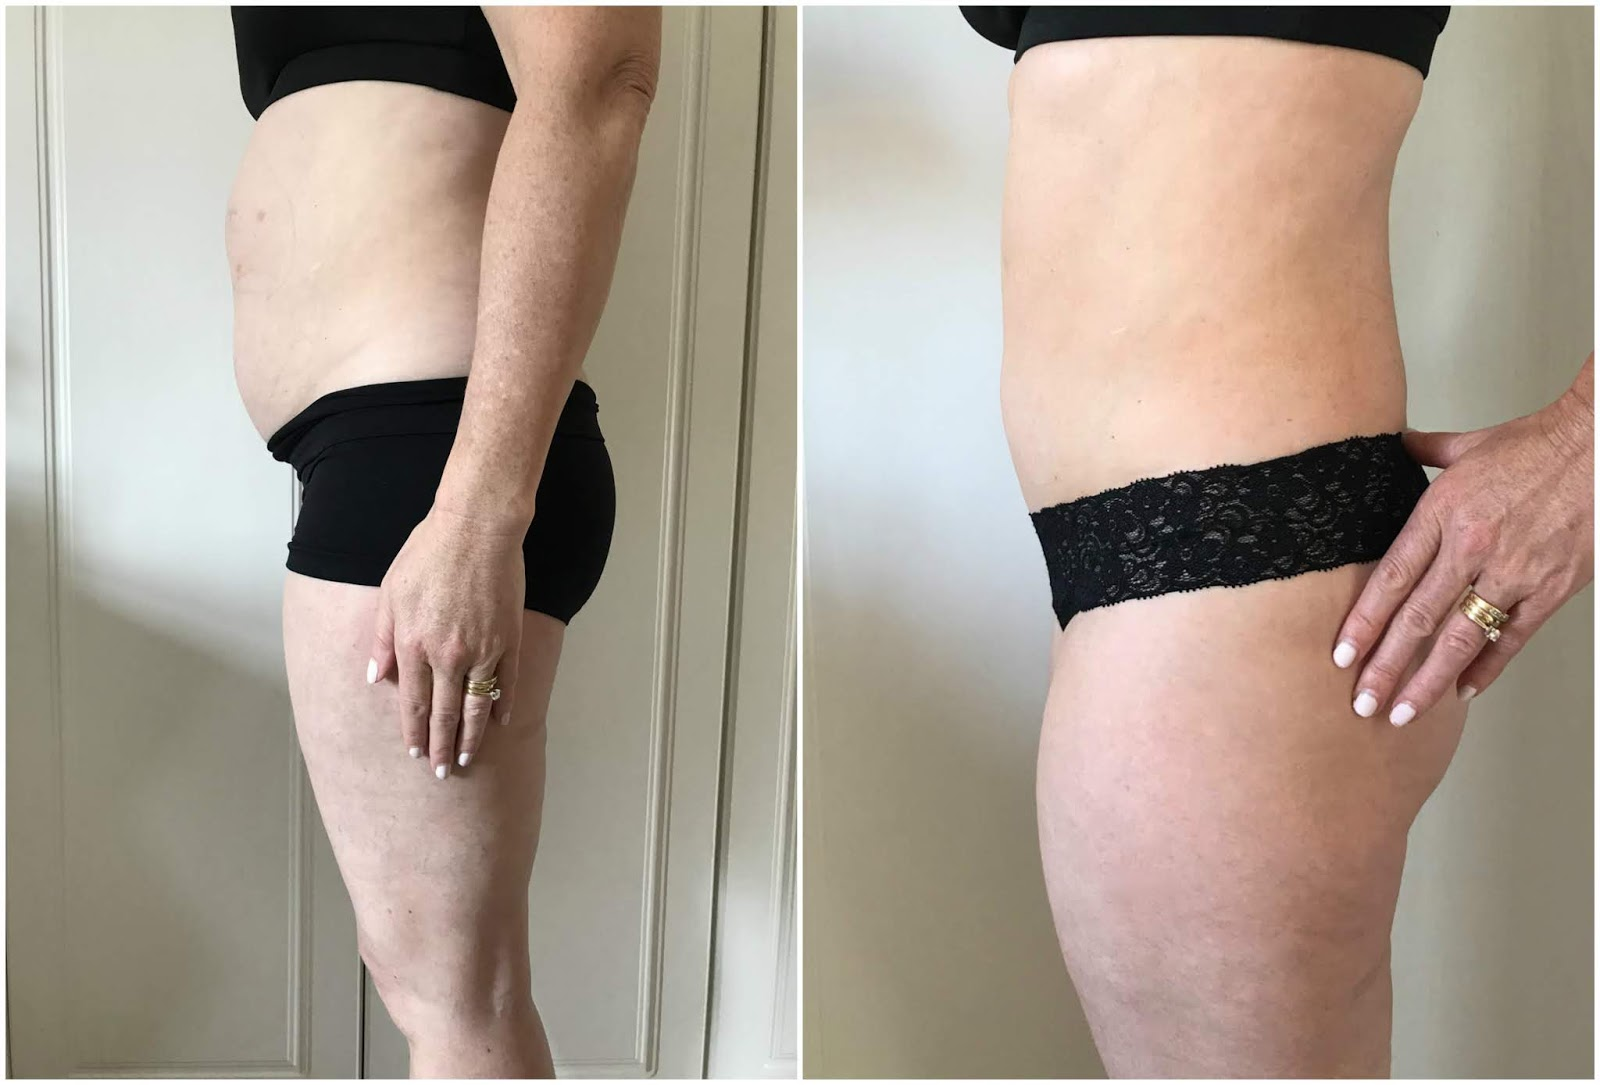 Coolsculpting \ first photo and last photo after treatment